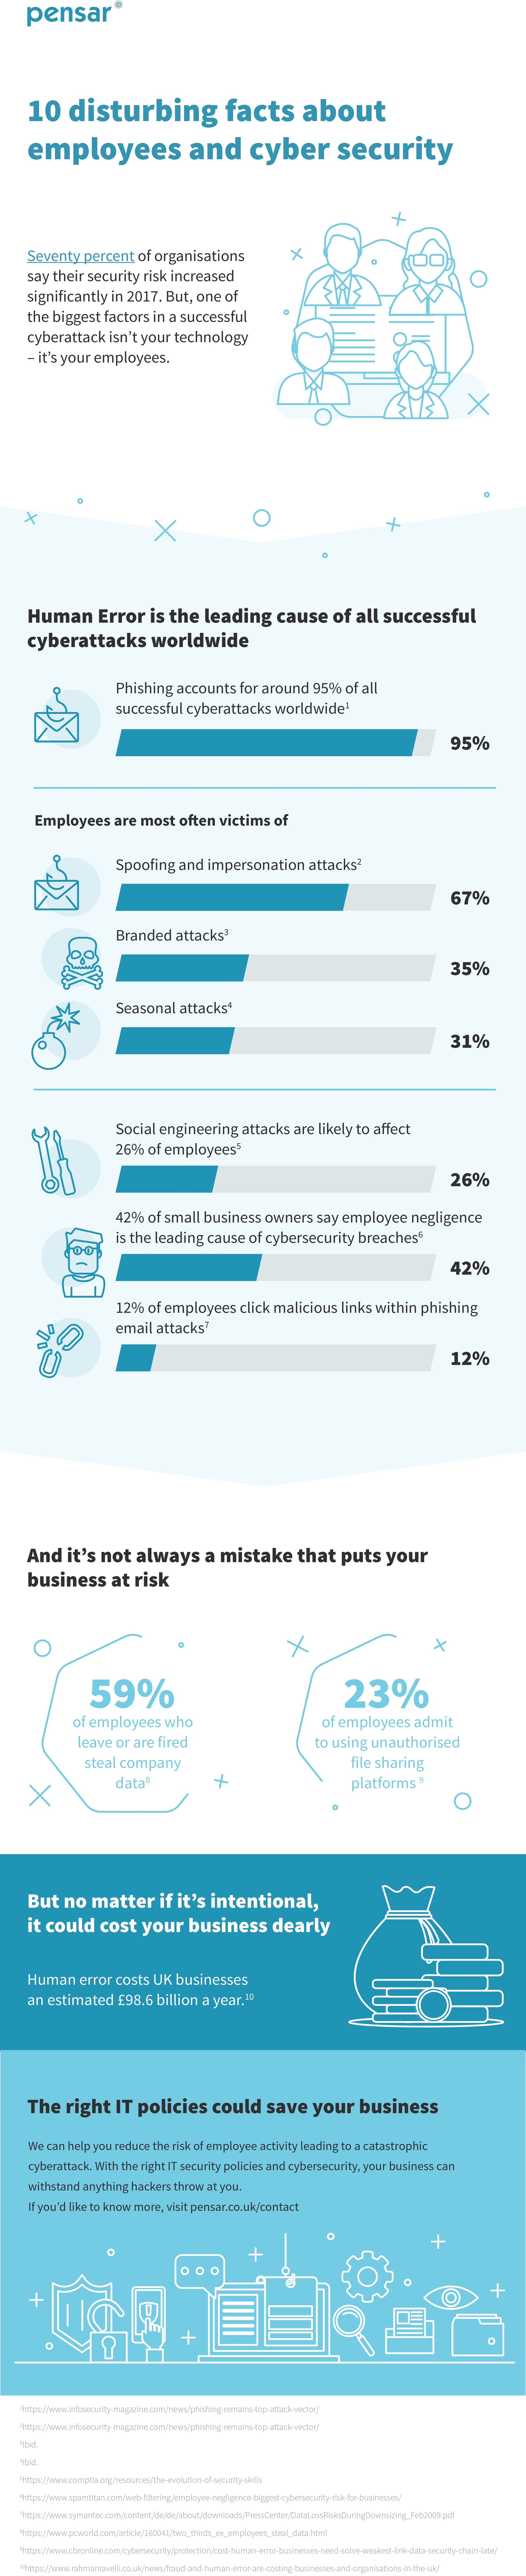 10 disturbing facts about employees and cyber security body